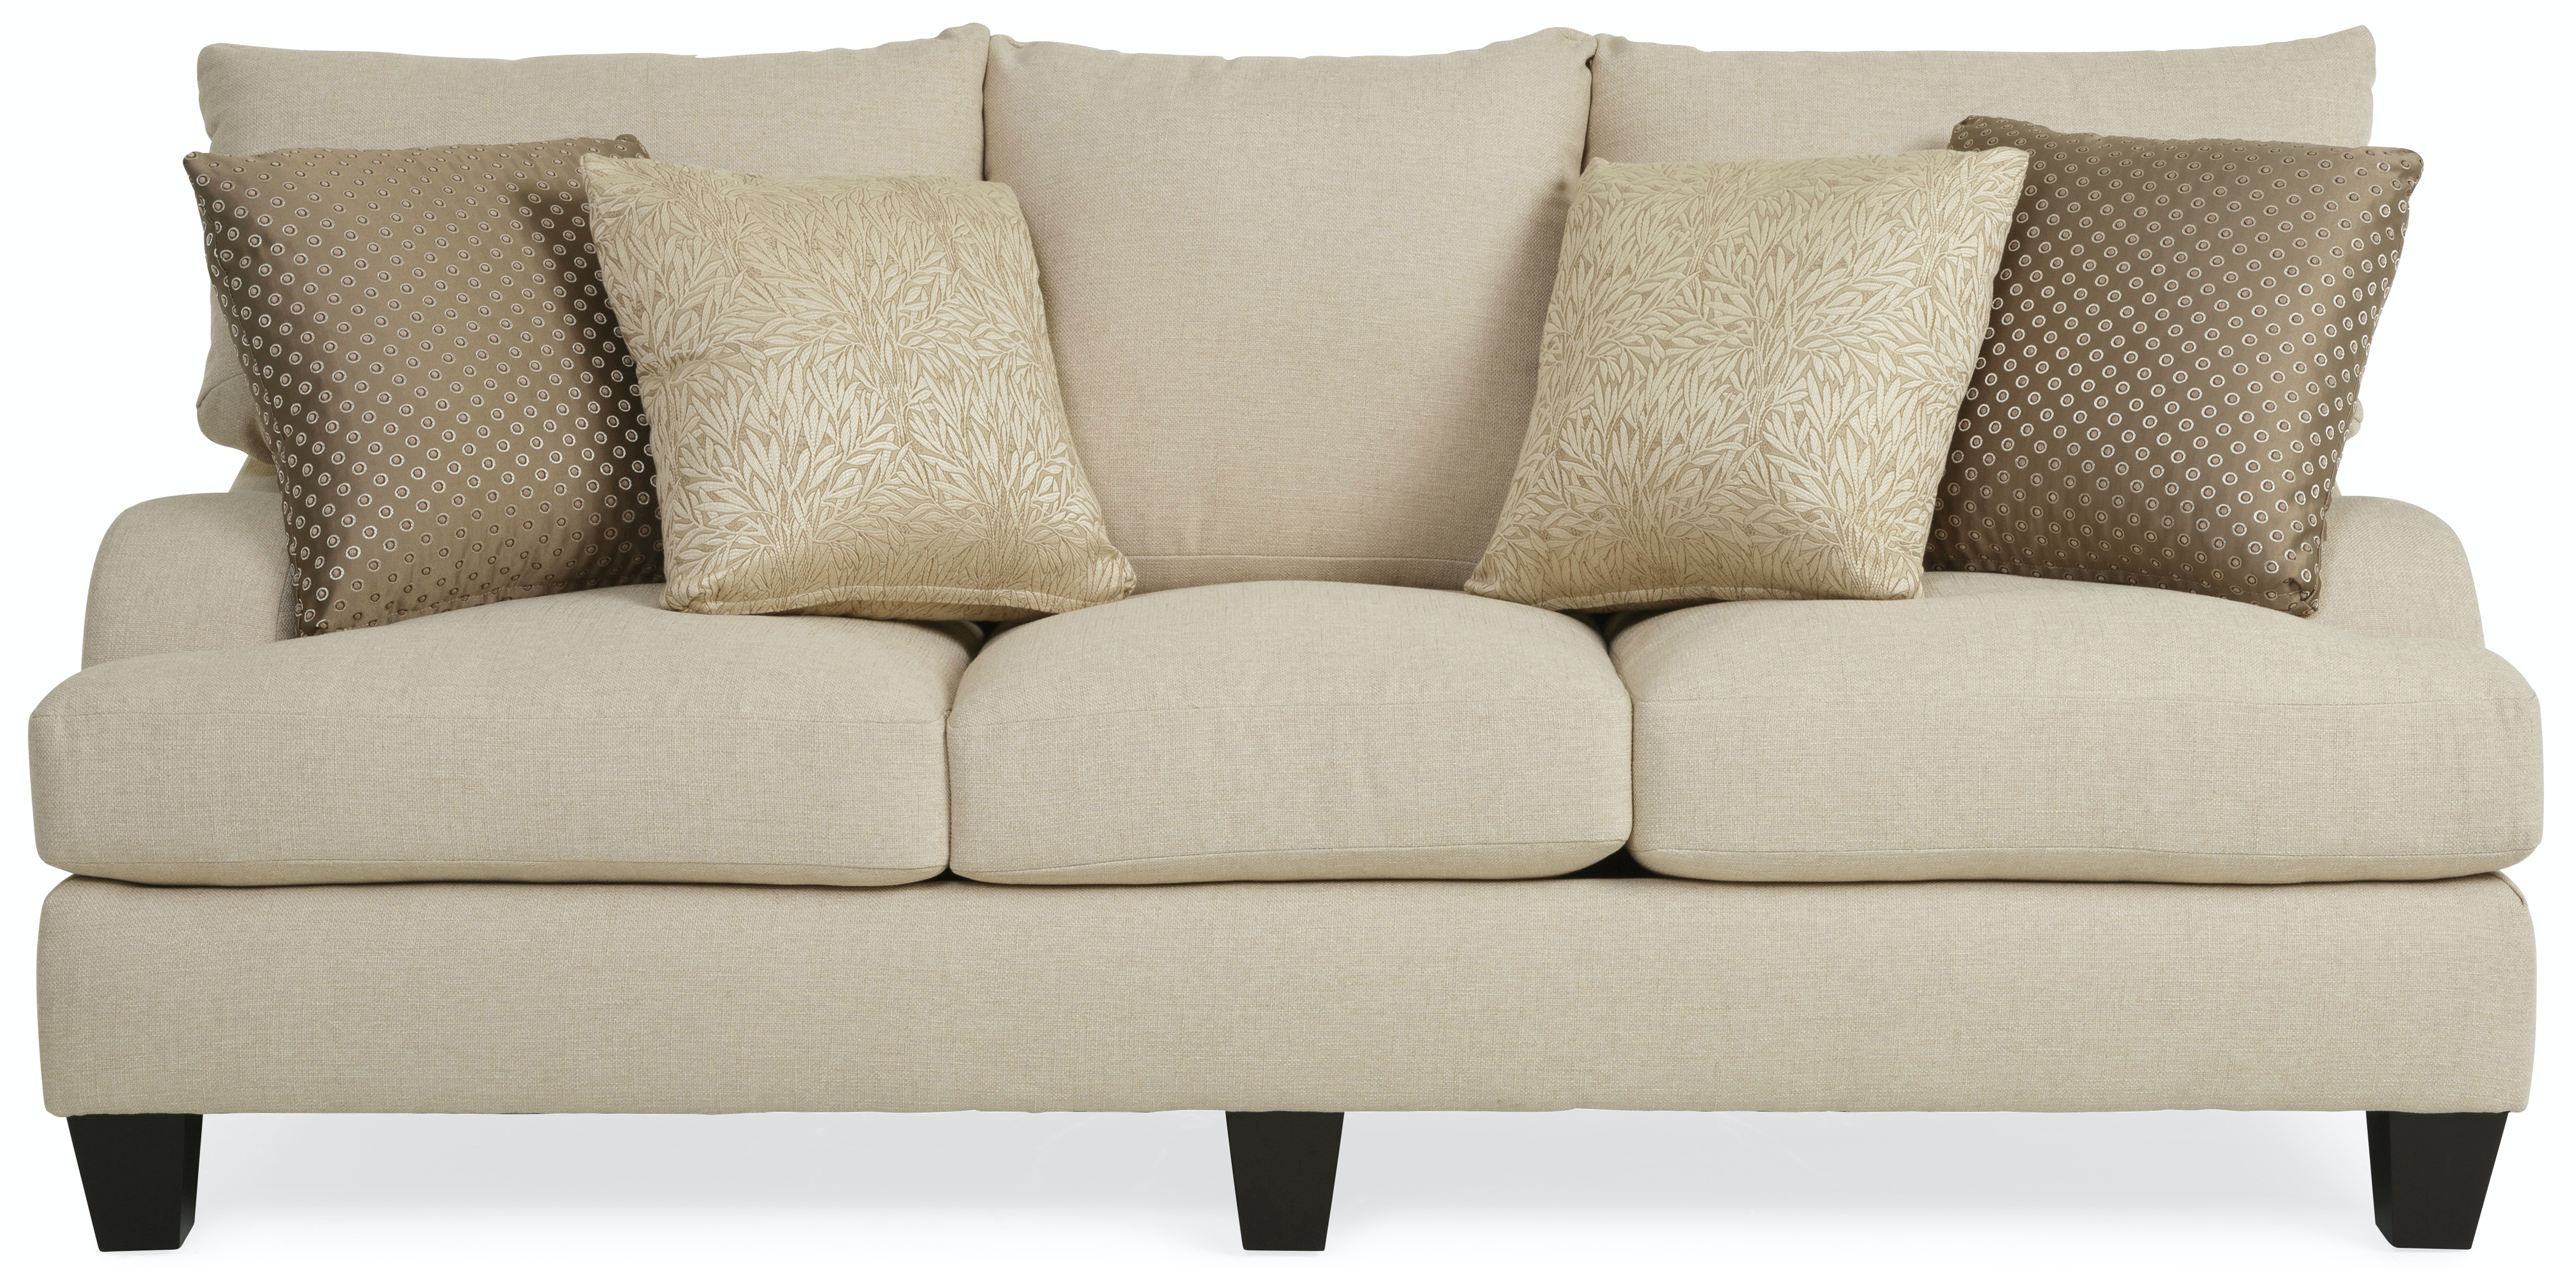 Merveilleux Brooke Sofa   87 INCHES ST:332500